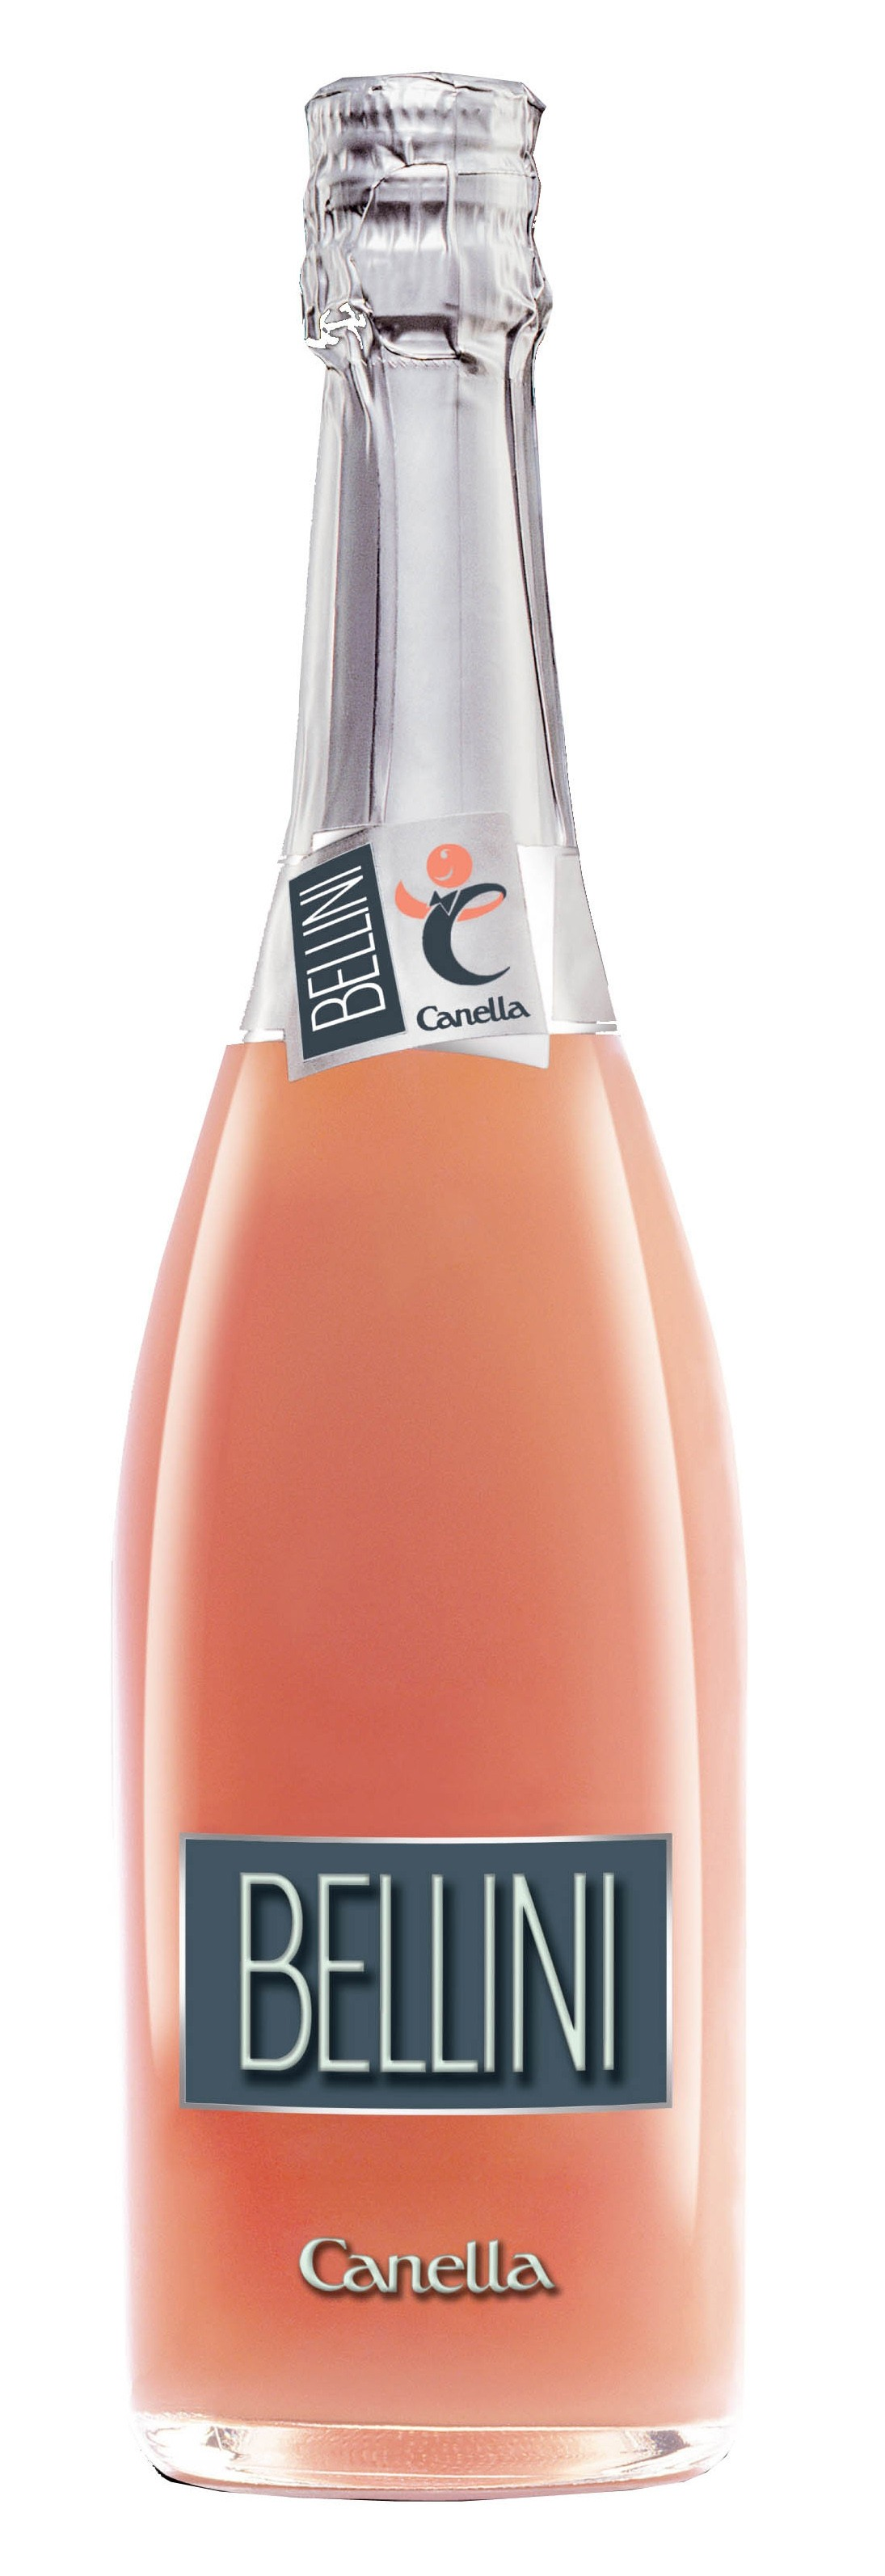 Canella's Bellini | No Time to Mix? The Healthiest Ready-to-Drink ...